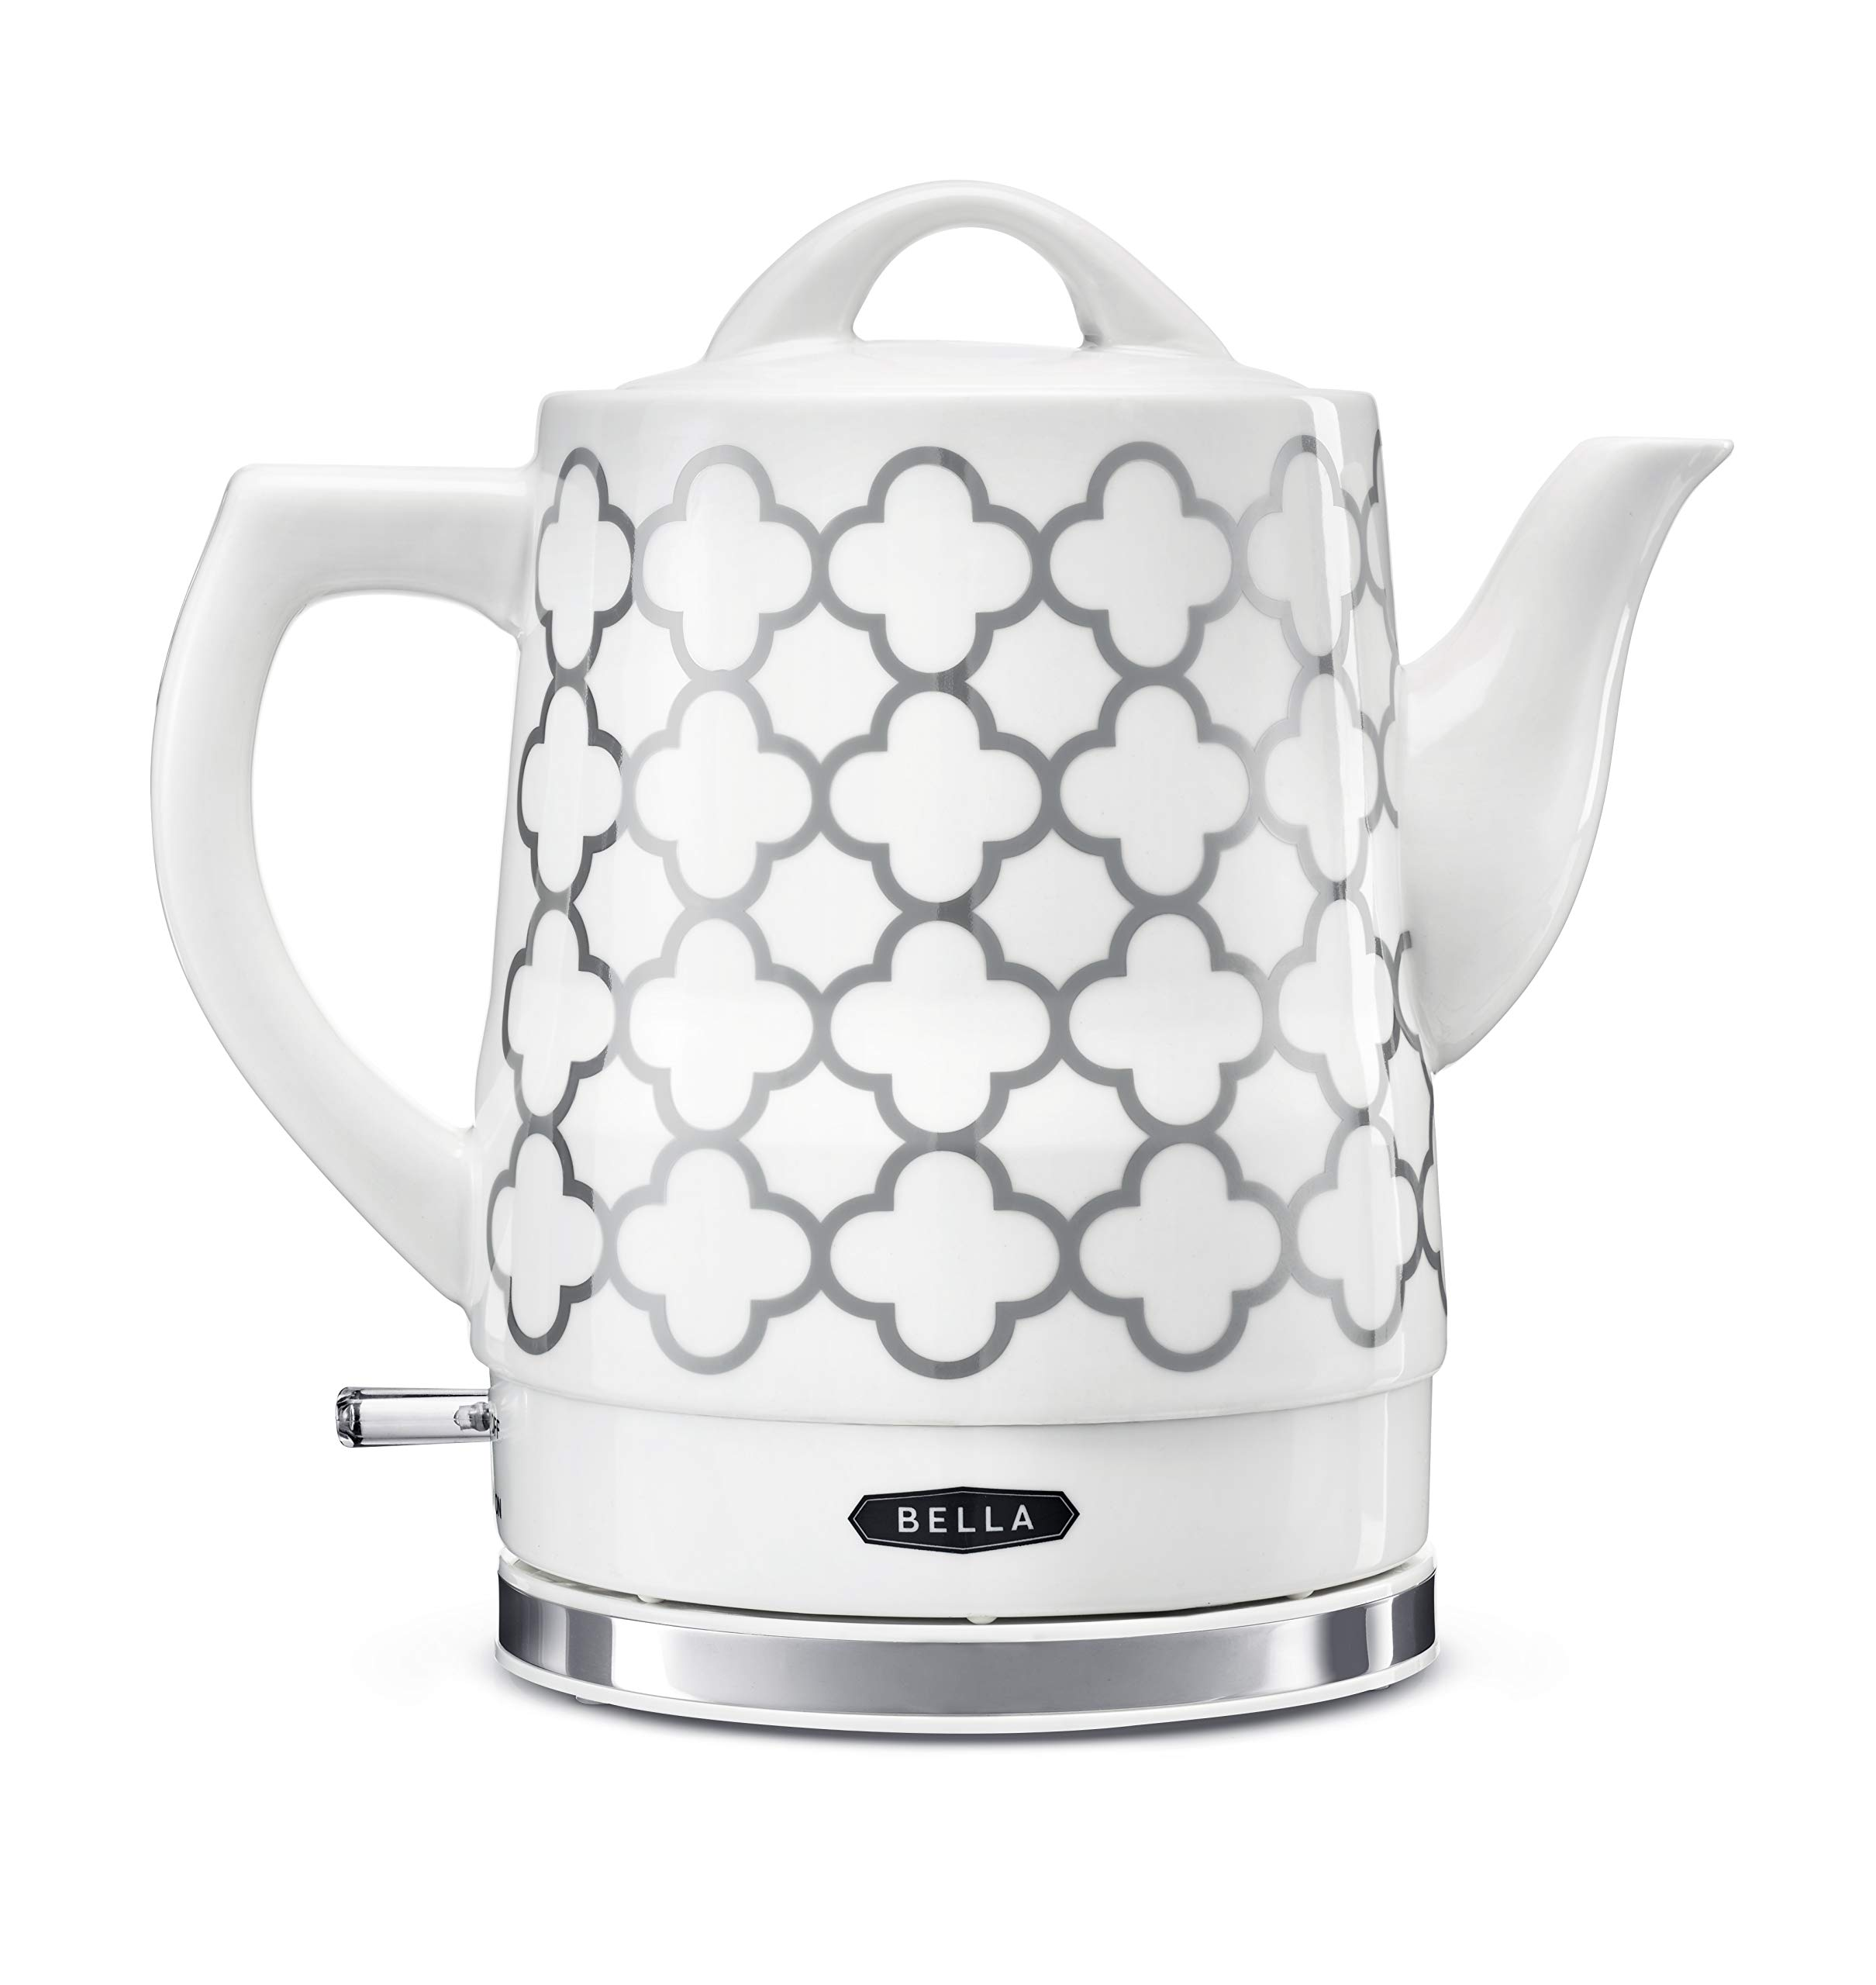 BELLA (14745) 1.5 Liter Electric Ceramic Tea Kettle with Boil Dry Protection & Detachable Swivel Base, Silver Foil